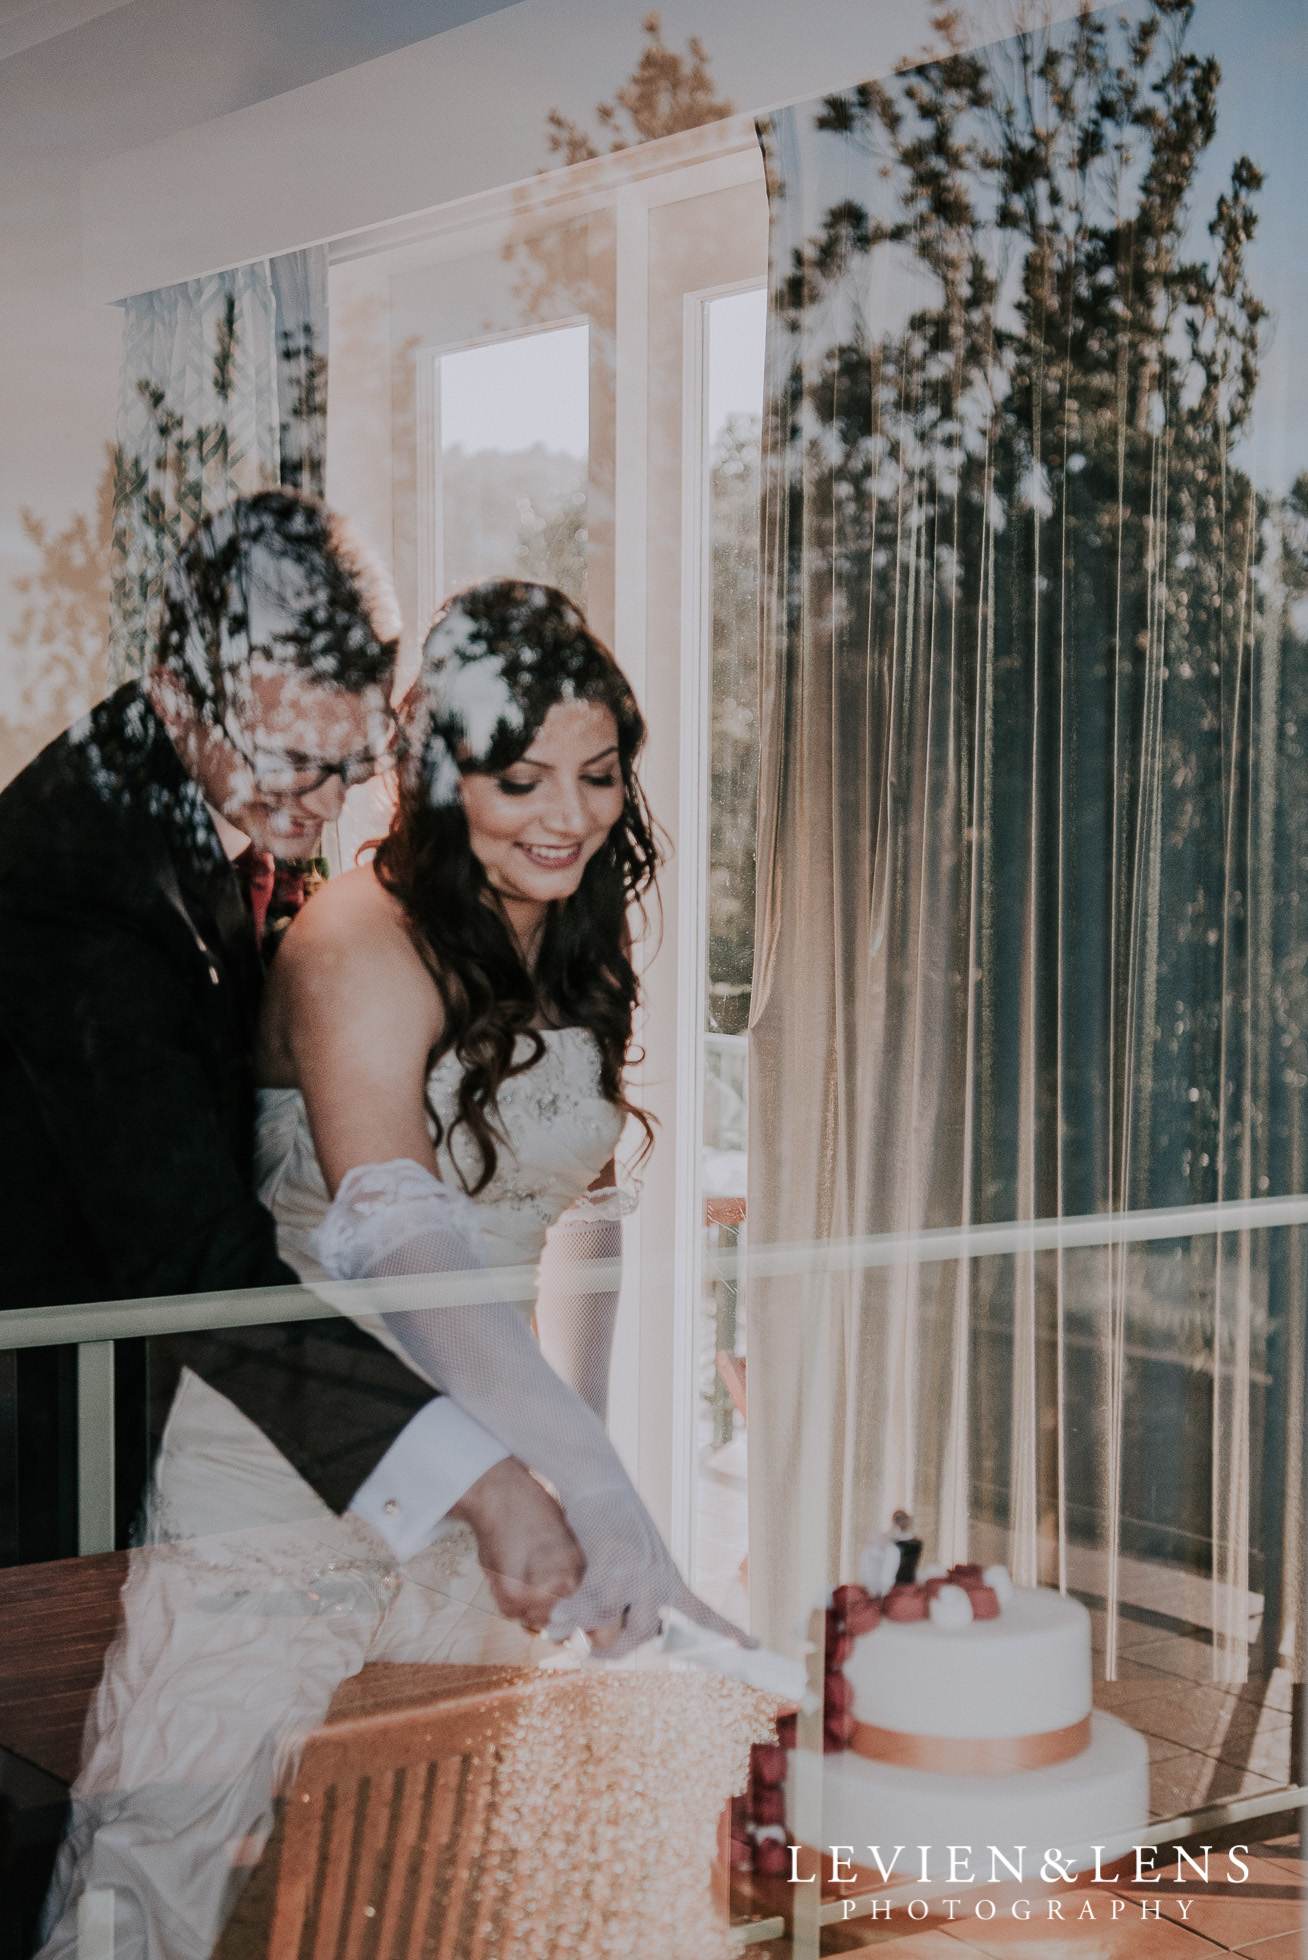 cake cutting - bride and groom at reception {Auckland wedding photographer}